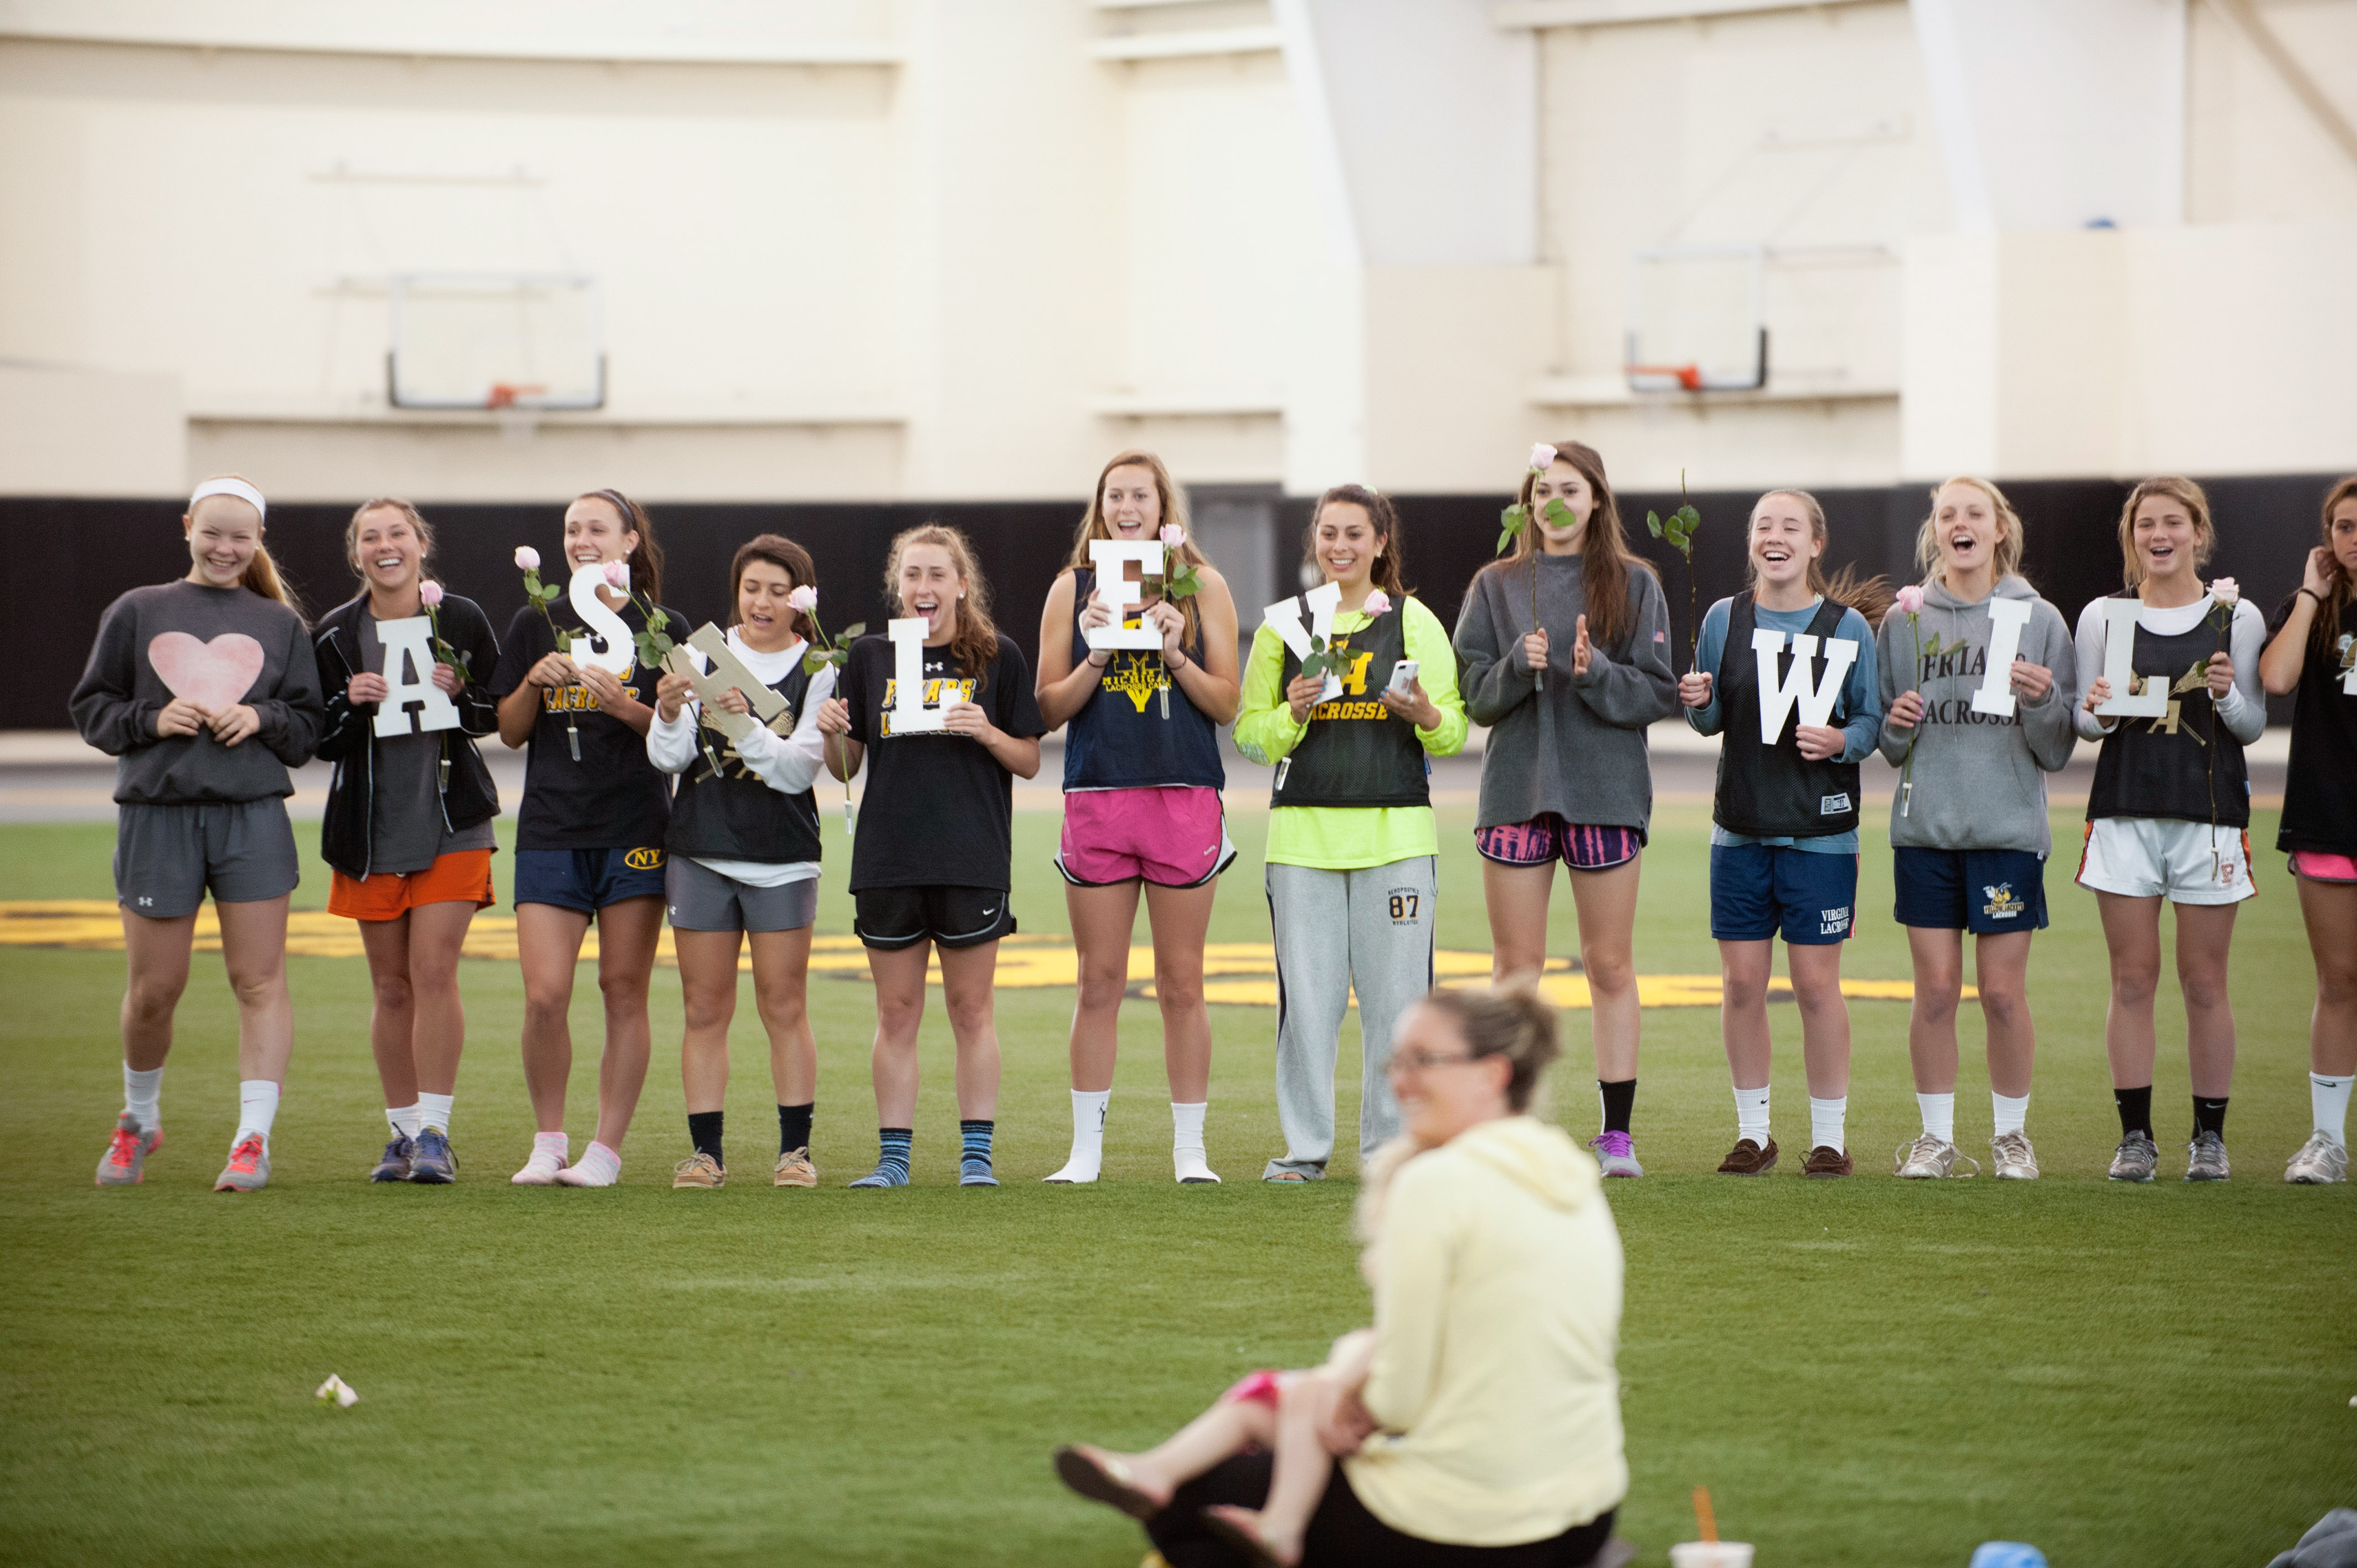 Image 4 of Marriage Proposal at Lacrosse Practice